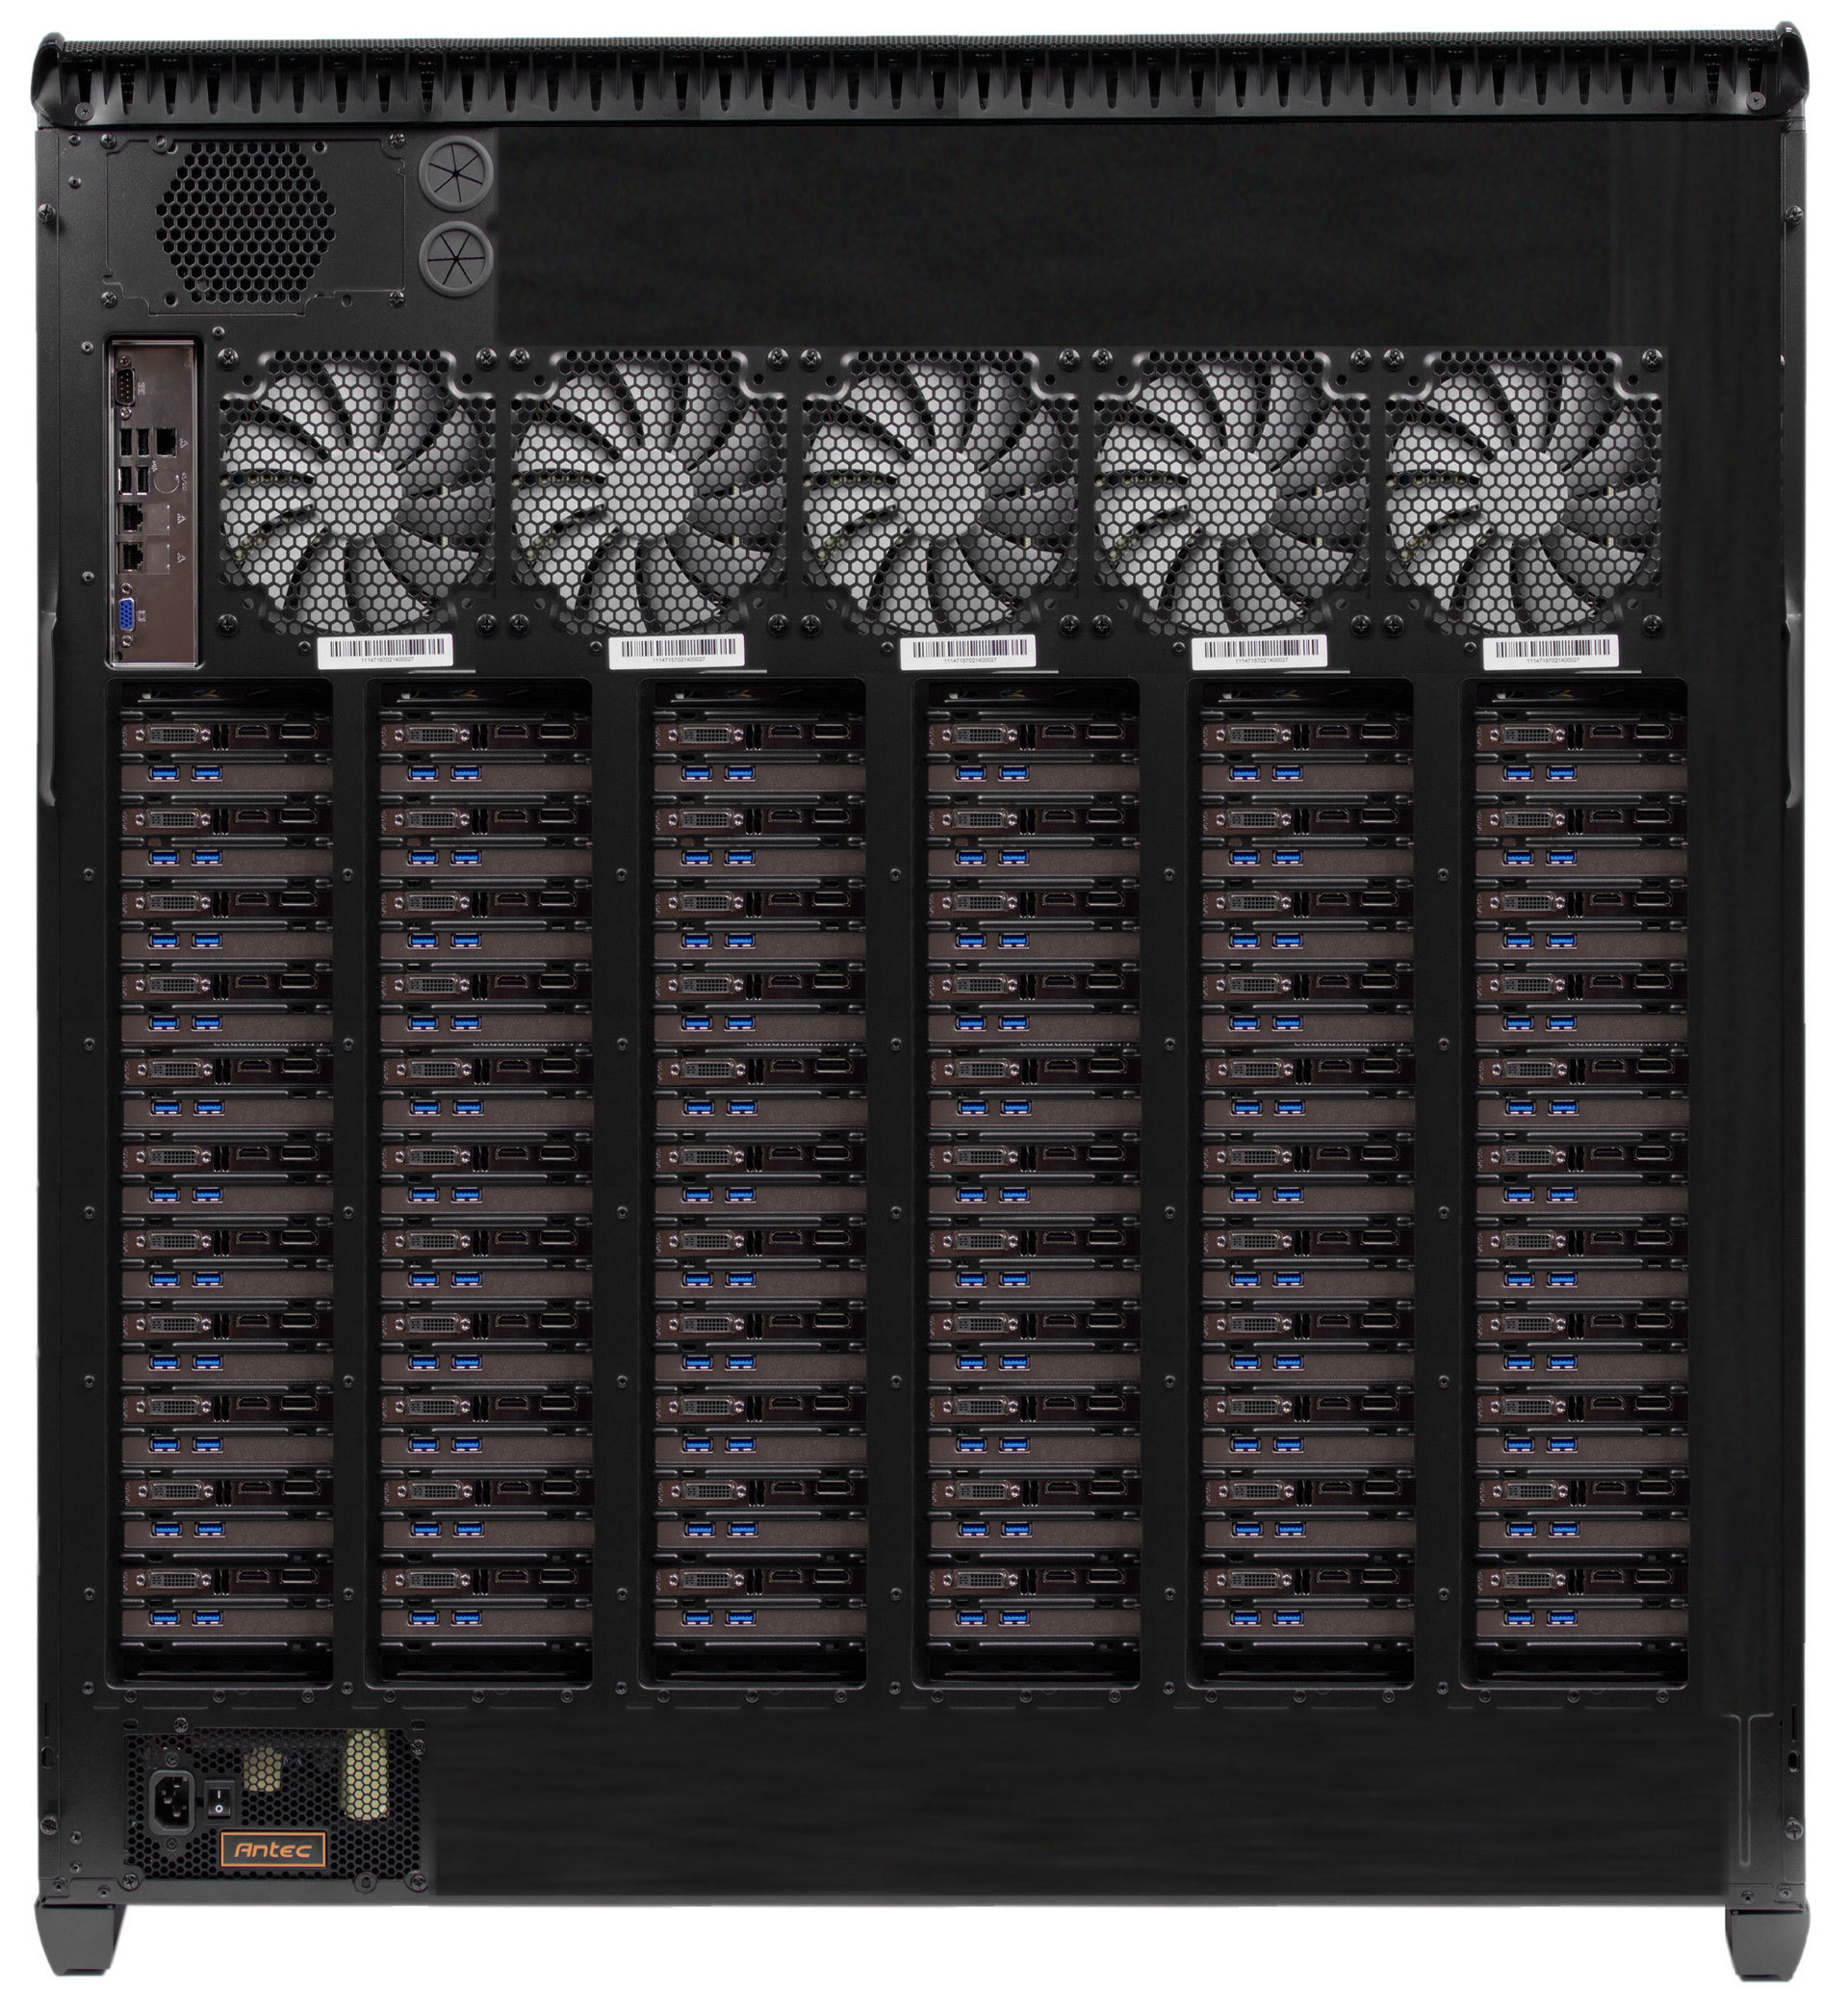 Theroretical quad Xeon PC running 66 video cards and USB controllers